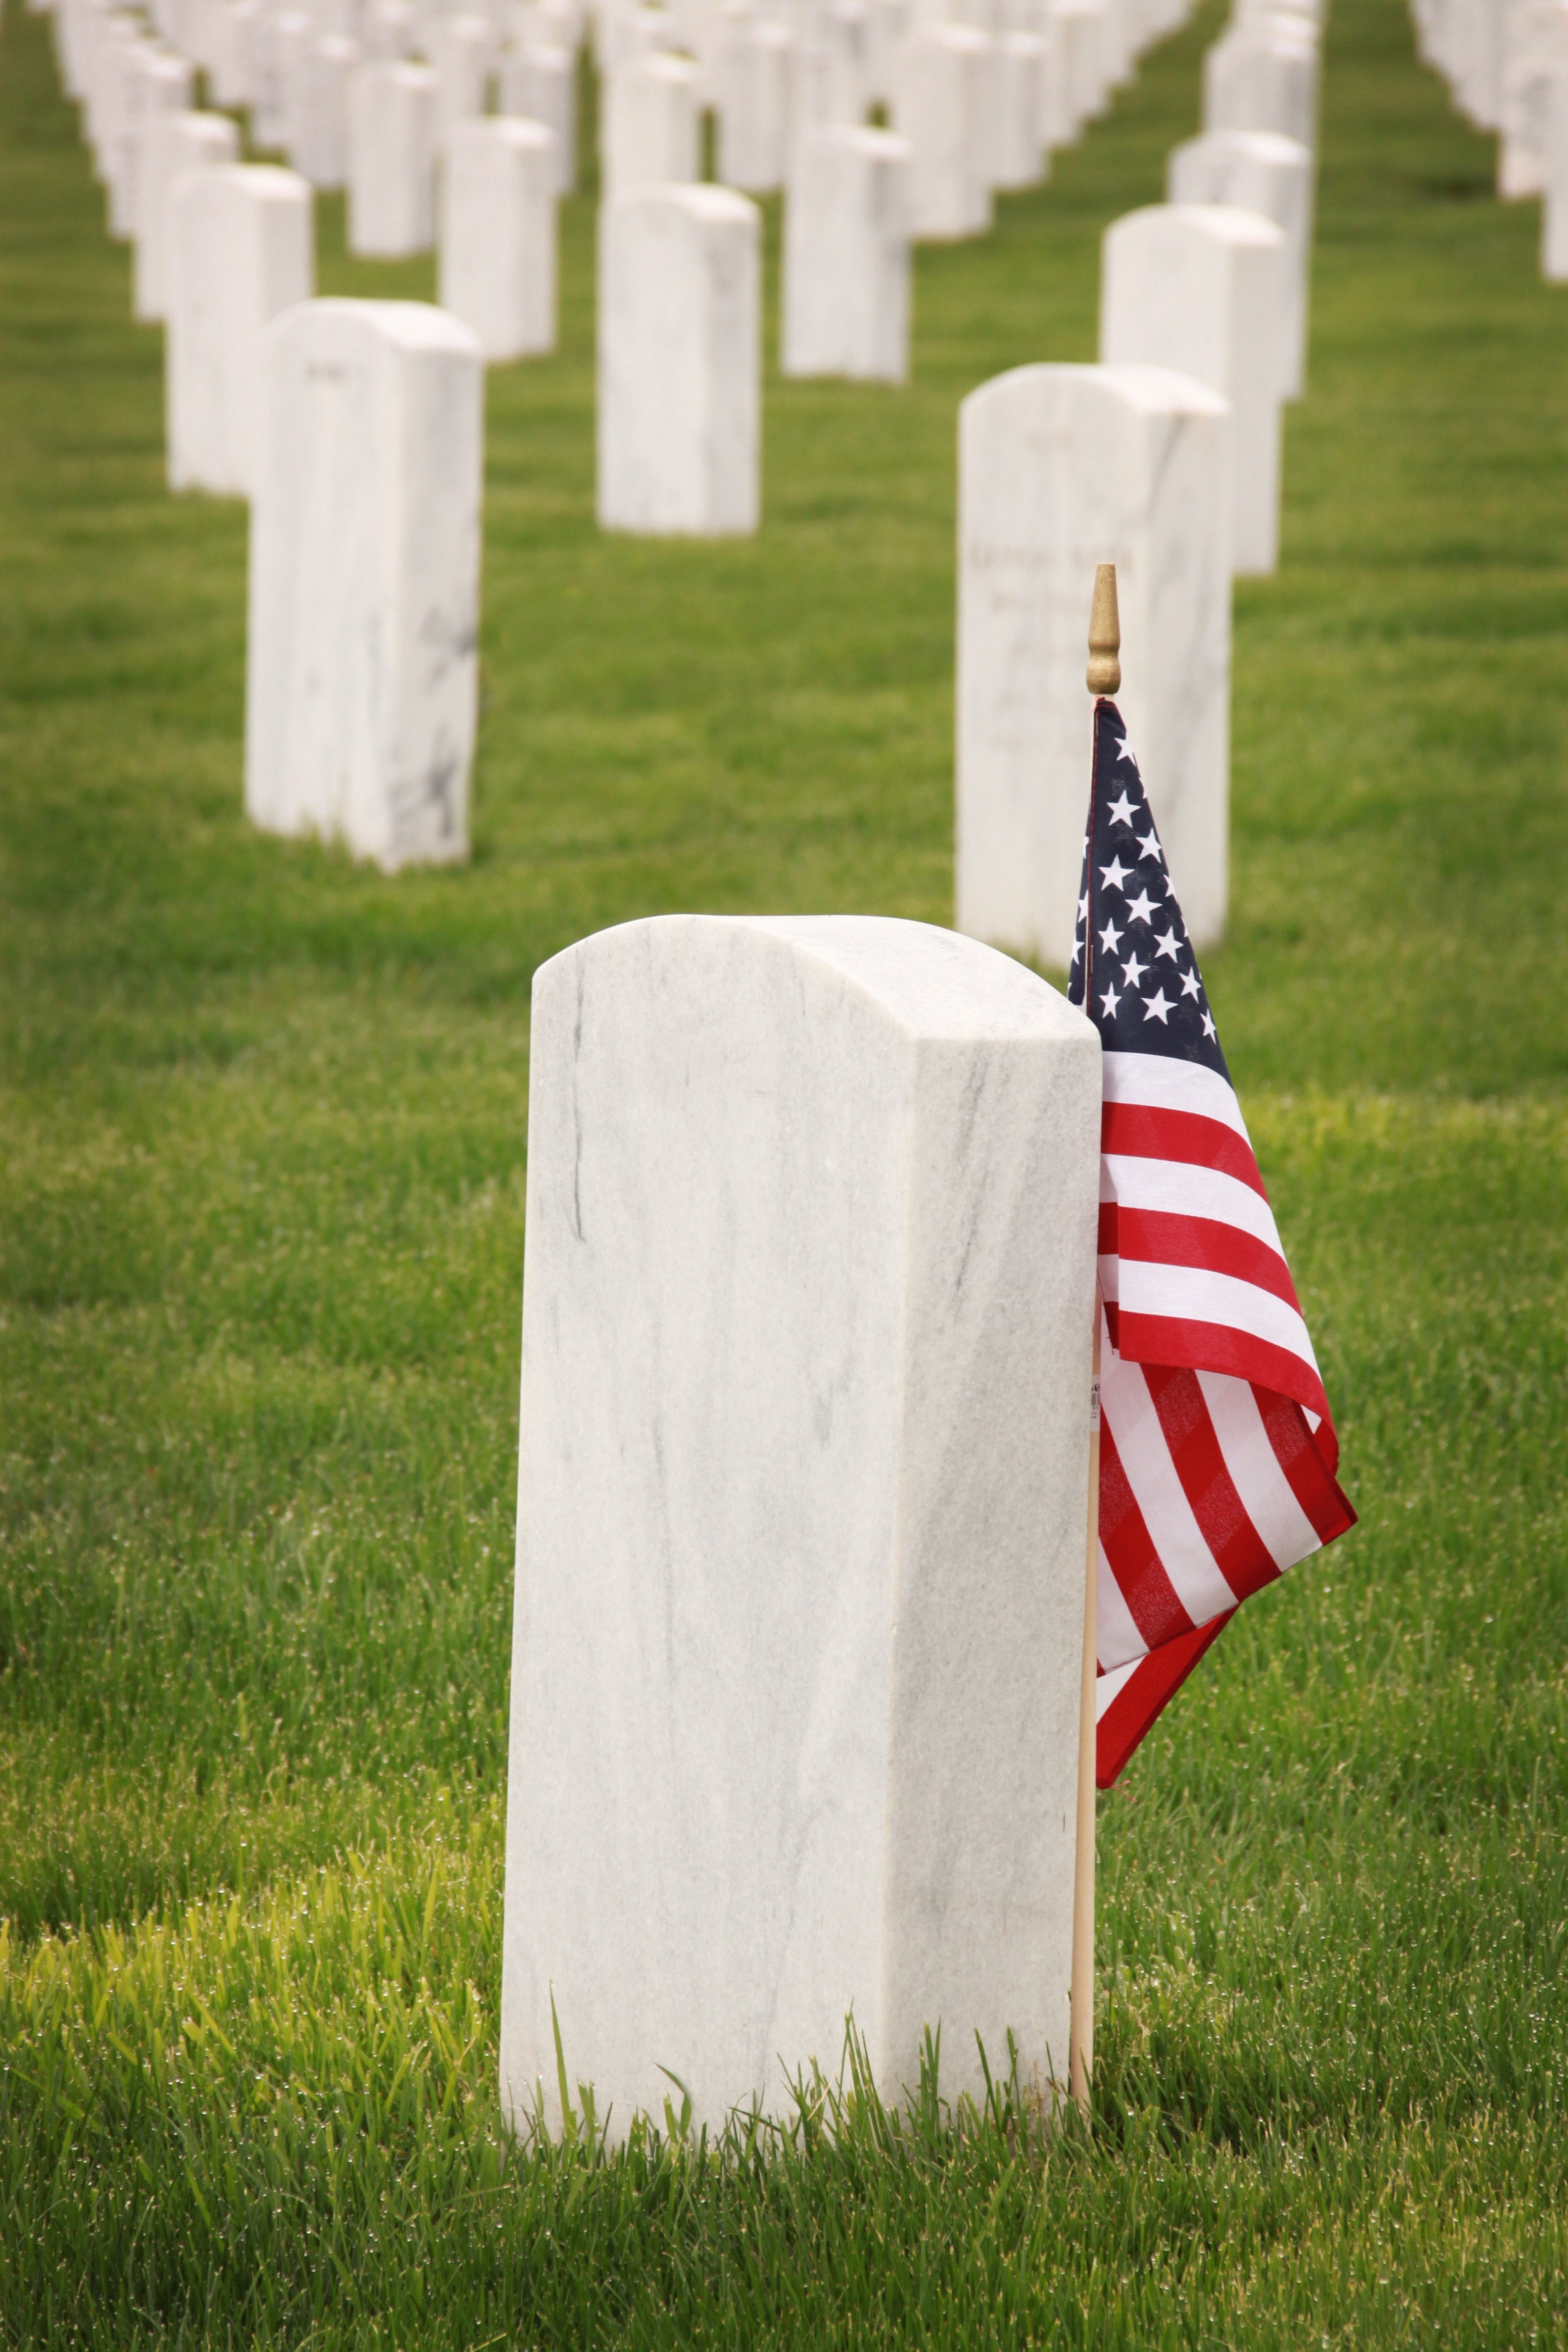 Get the English classroom learning about history with this Memorial Day EFL lesson